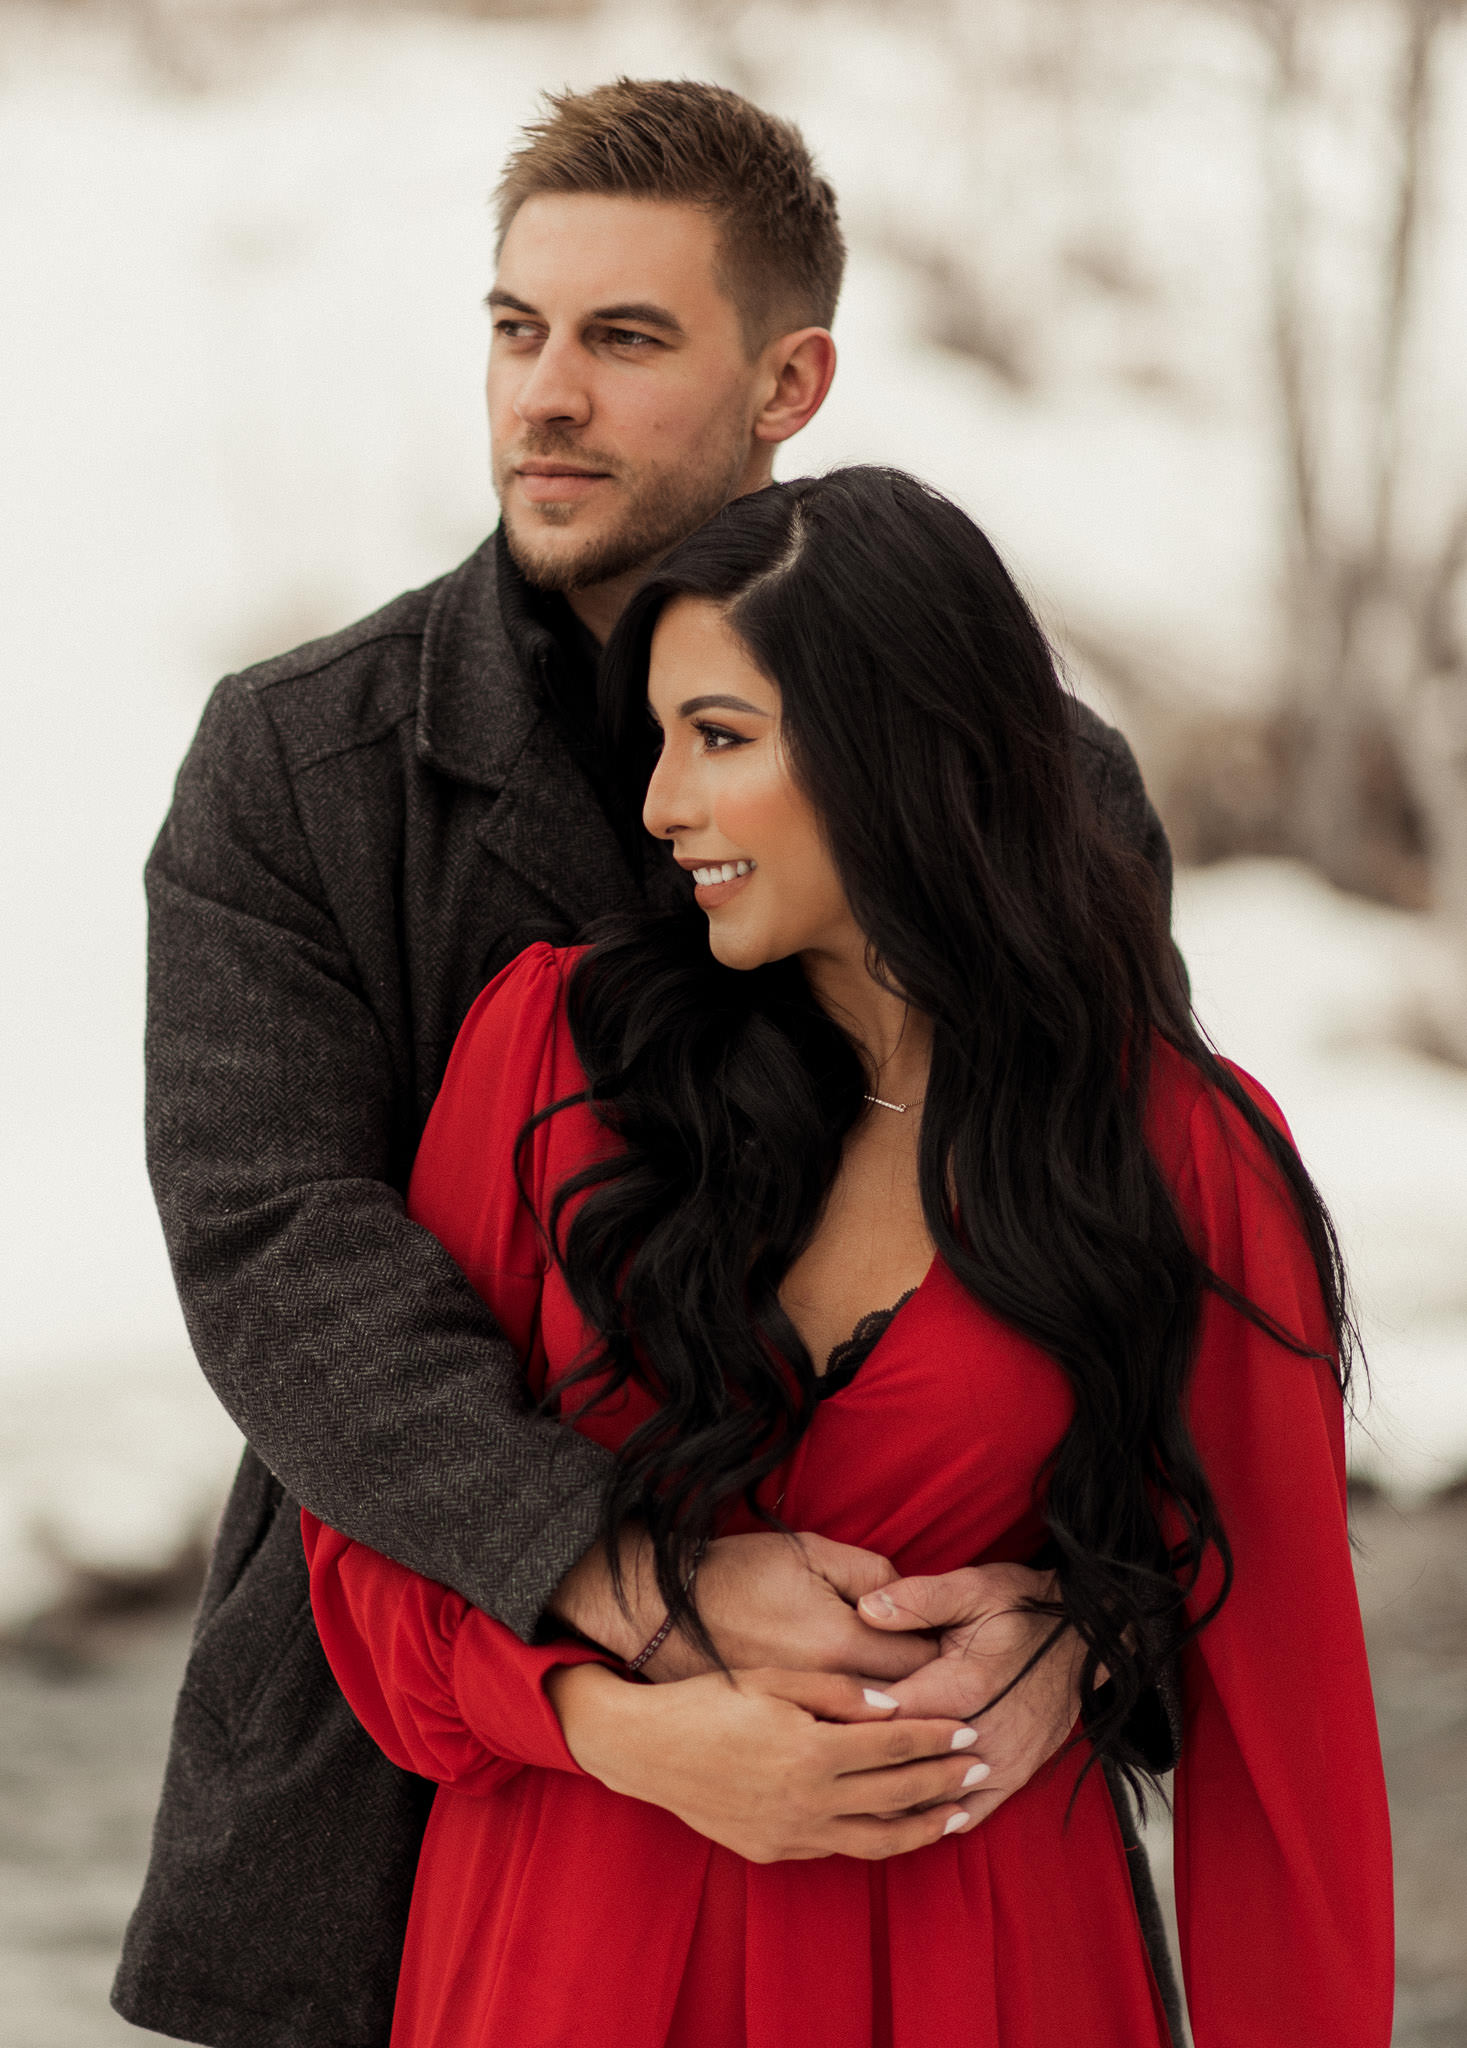 sandra-ryan-colorado-winter-snow-engagement-couples-valentines-red-houston-photographer-sm-20.jpg